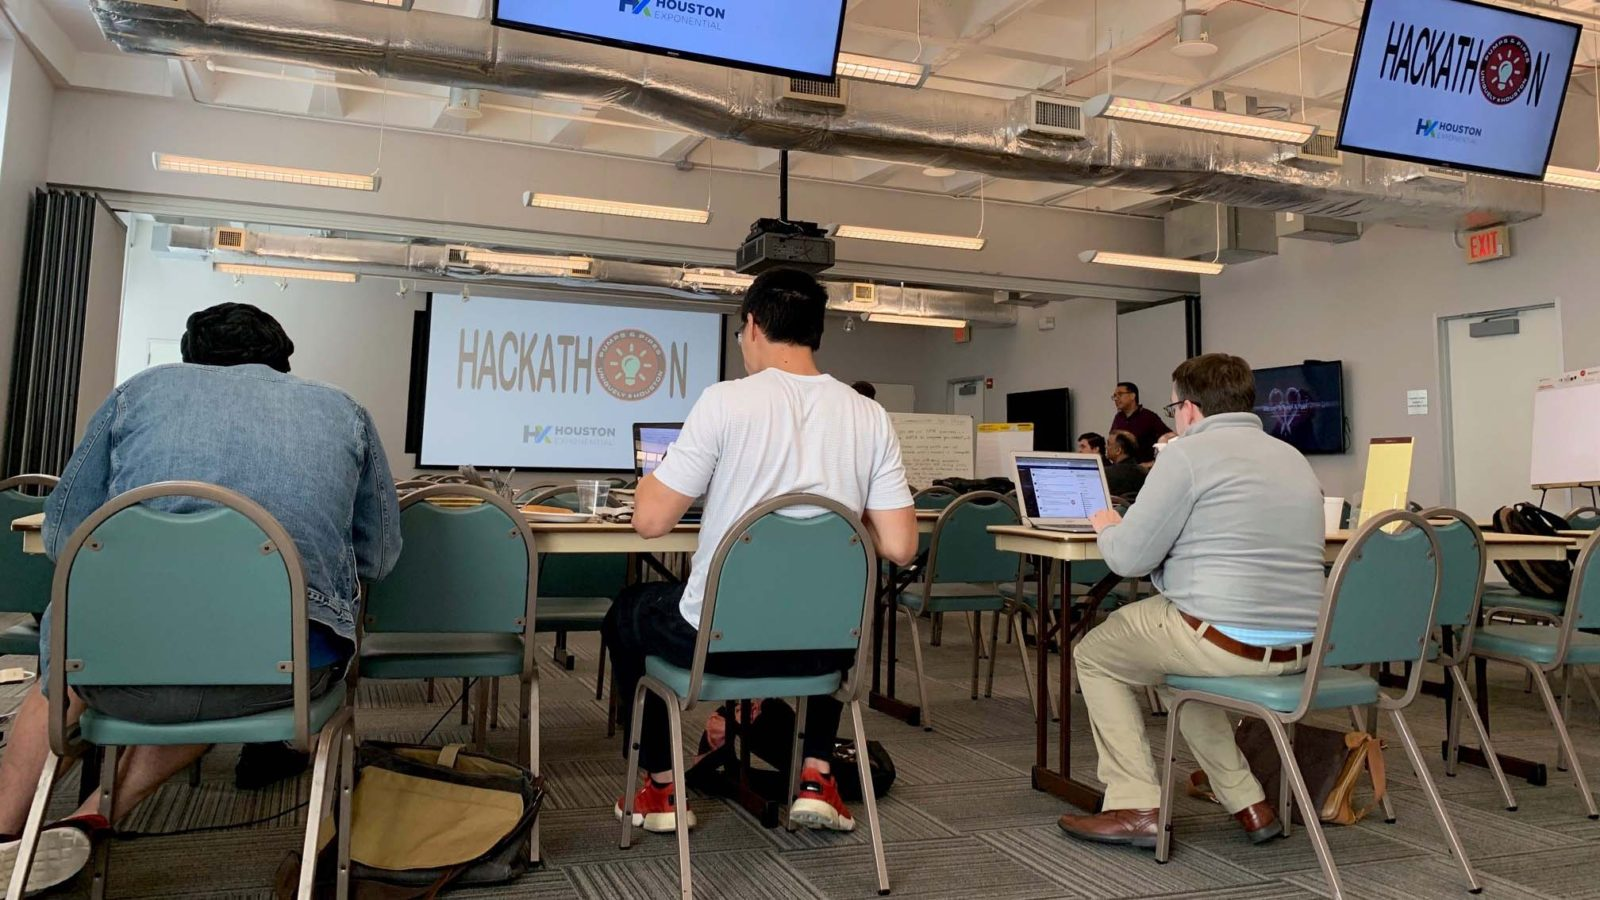 view from behind of three men sitting in chairs and working on laptops under Hackathon signs